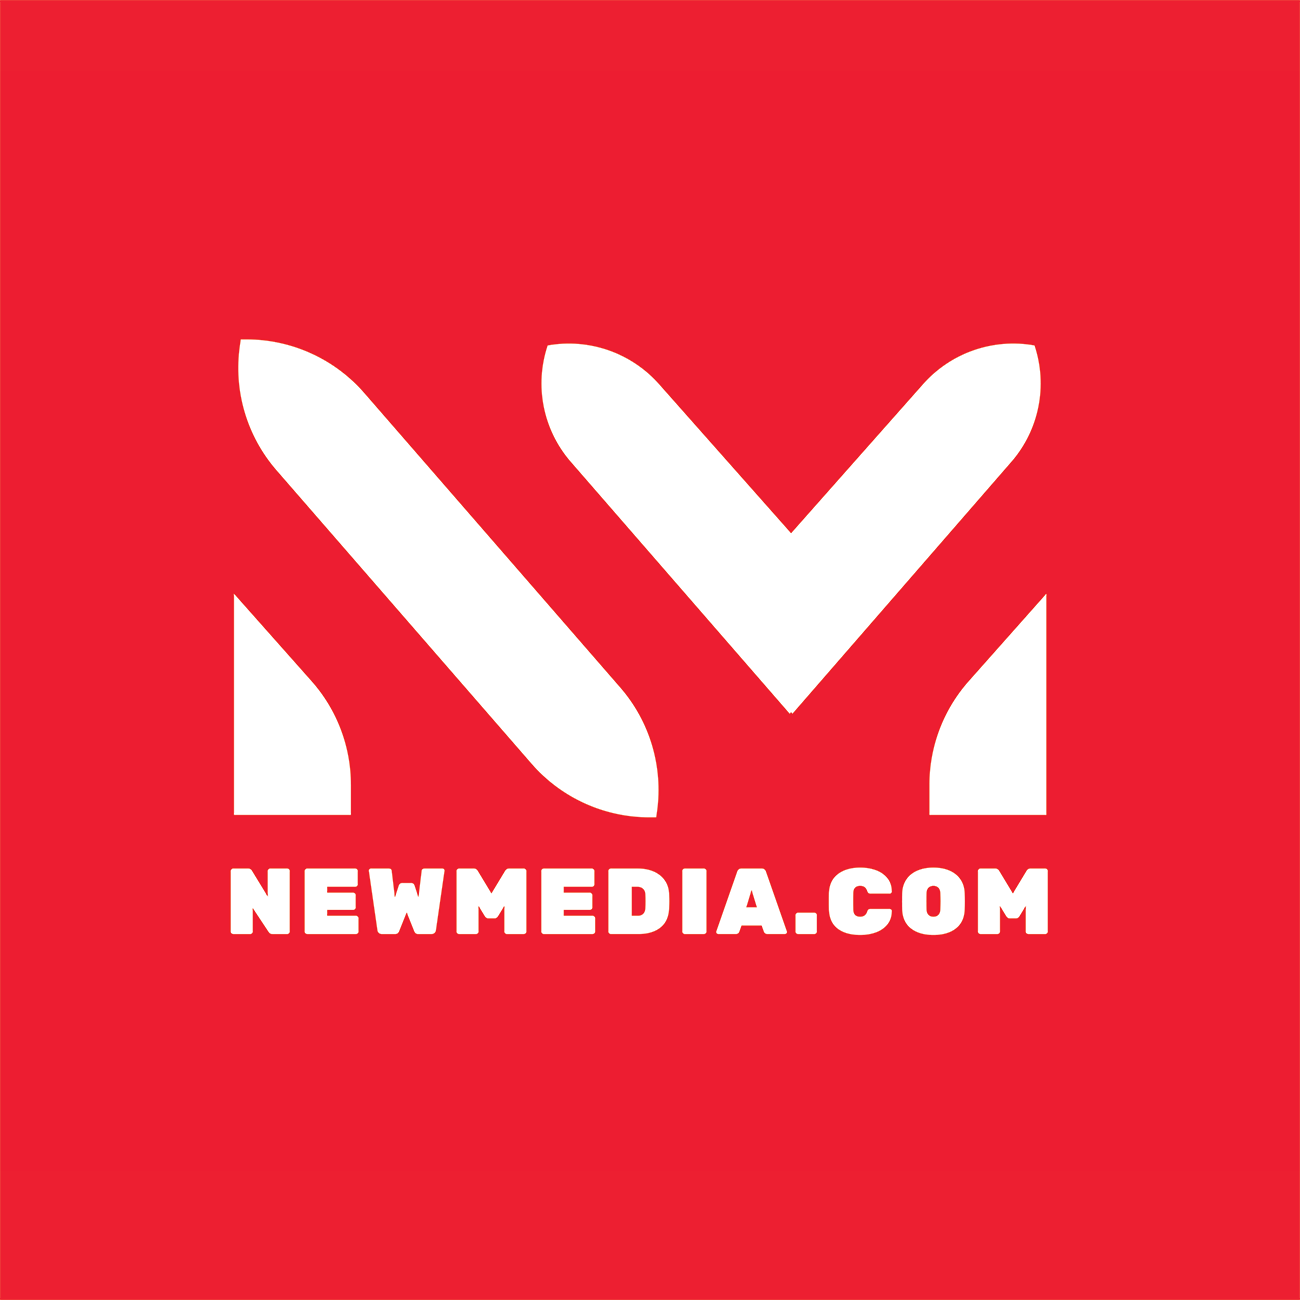 NEWMEDIA - Denver Web Design, Development, PPC + SEO